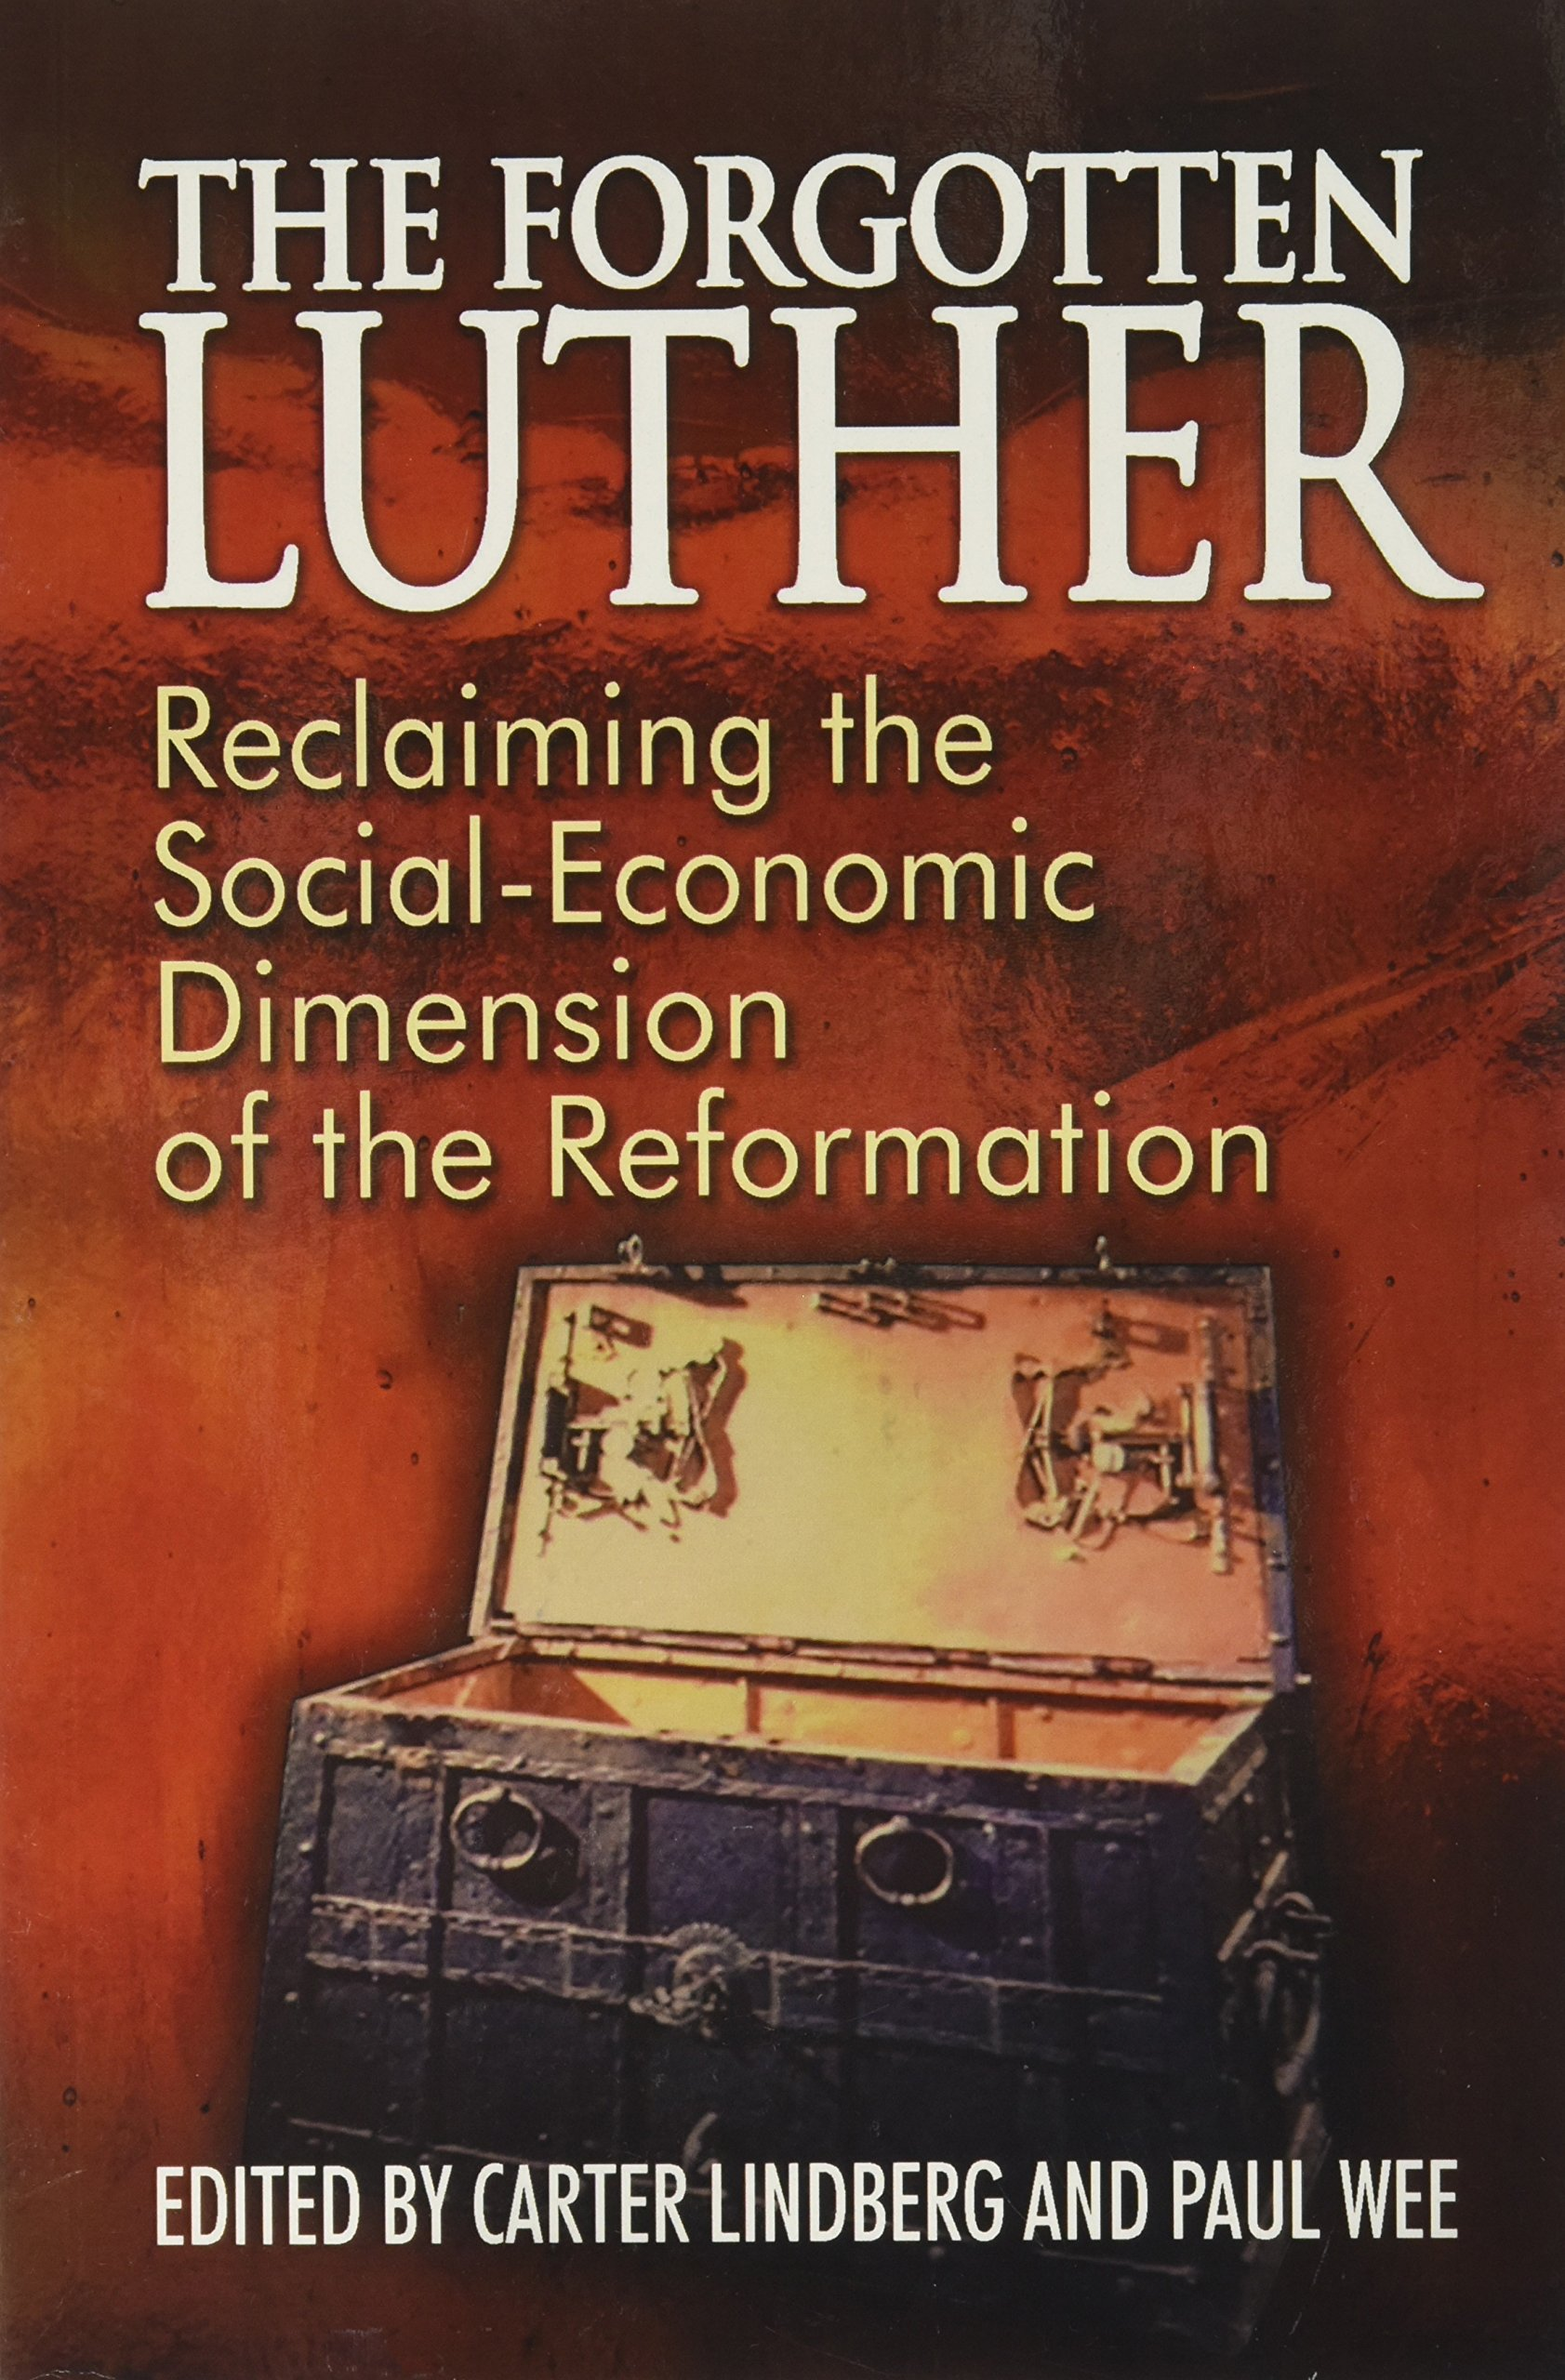 The Forgotten Luther Paperback – June 22, 2016